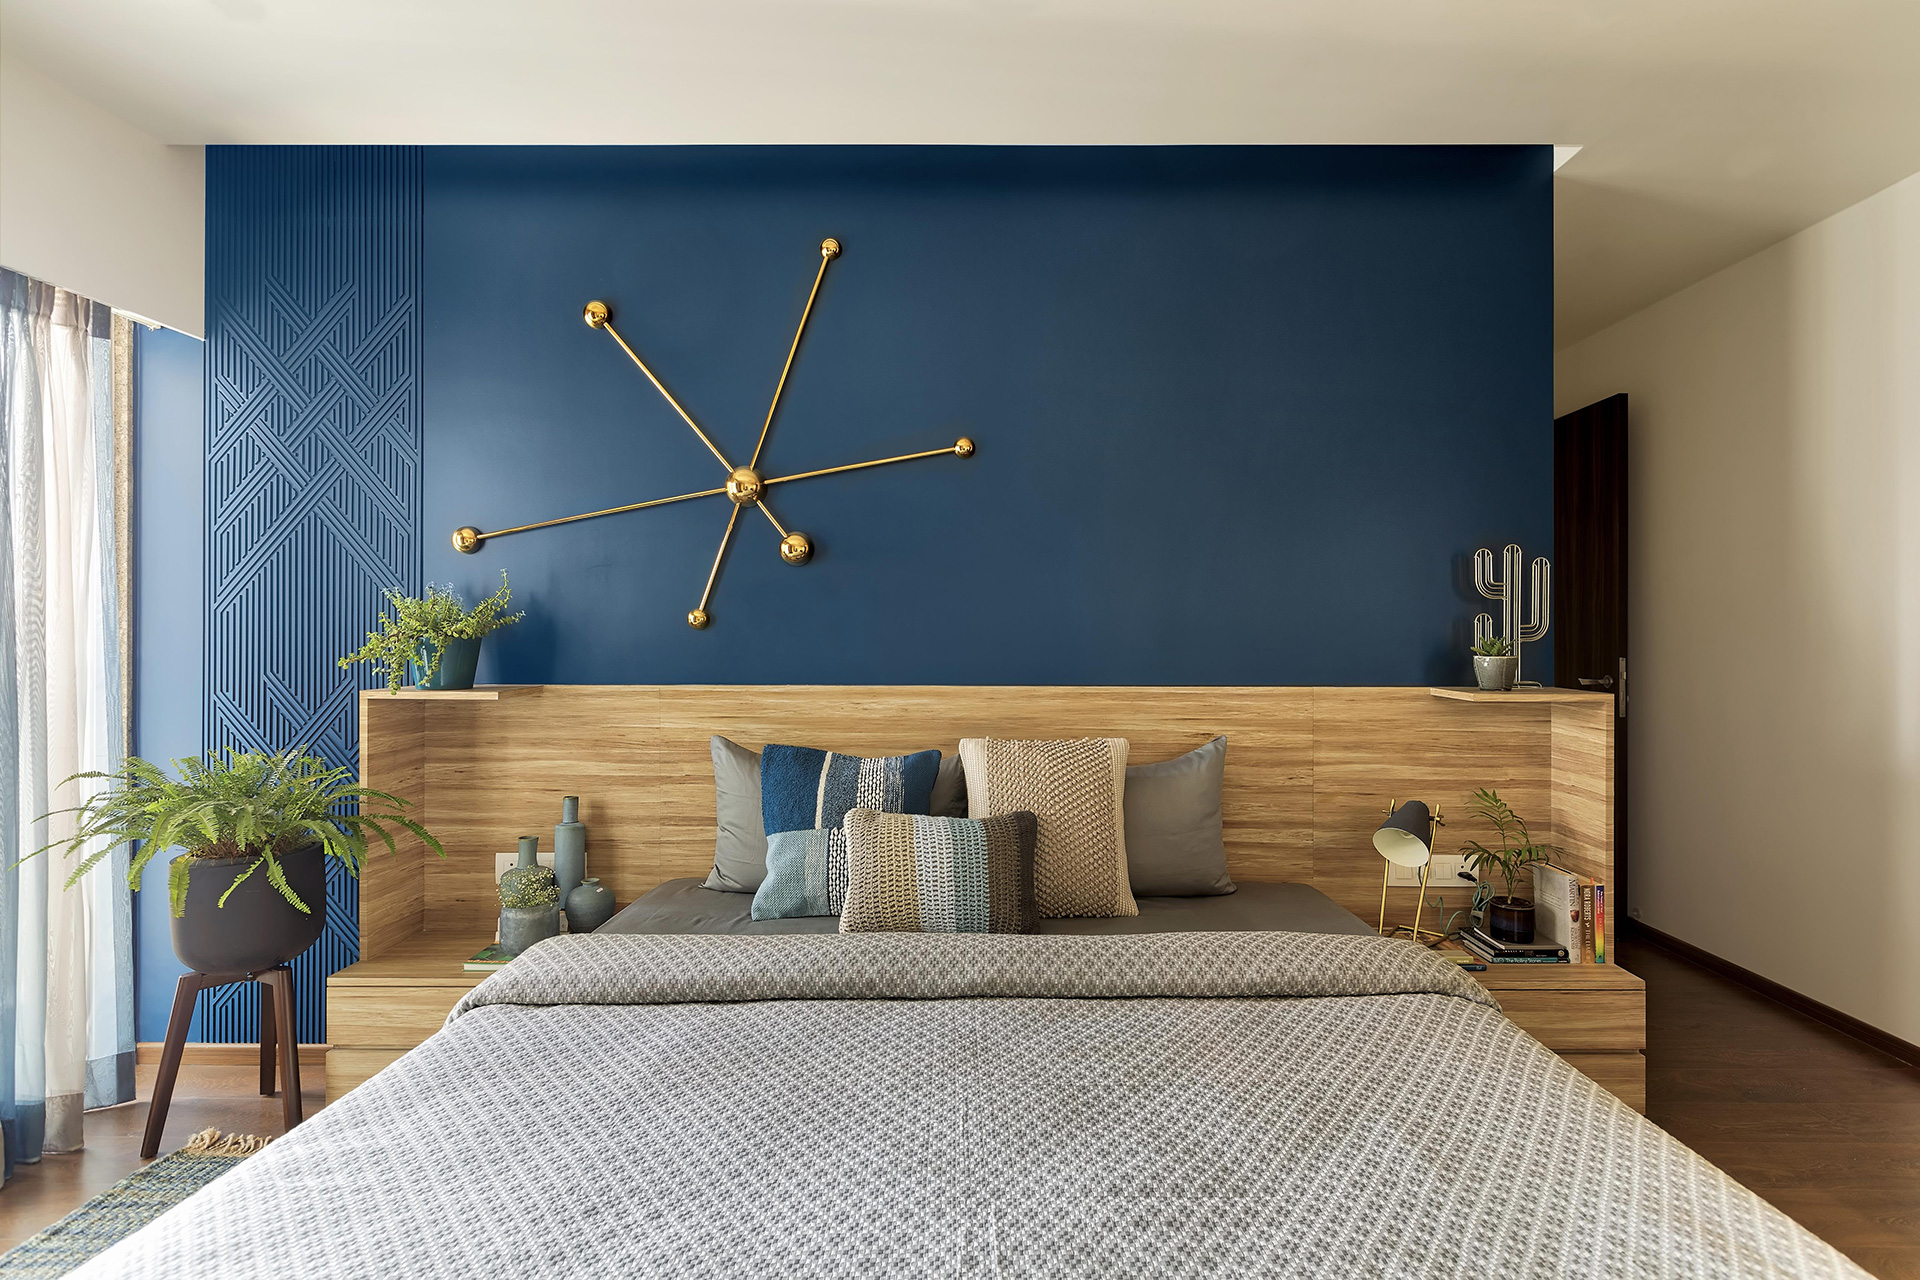 Colours and accessories in the bedrooms have been coordinated with the contemporary Mediterranean feel of the rest of the living areas| Anu Chauhan, Prashant Chauhan| Zero9| STIR